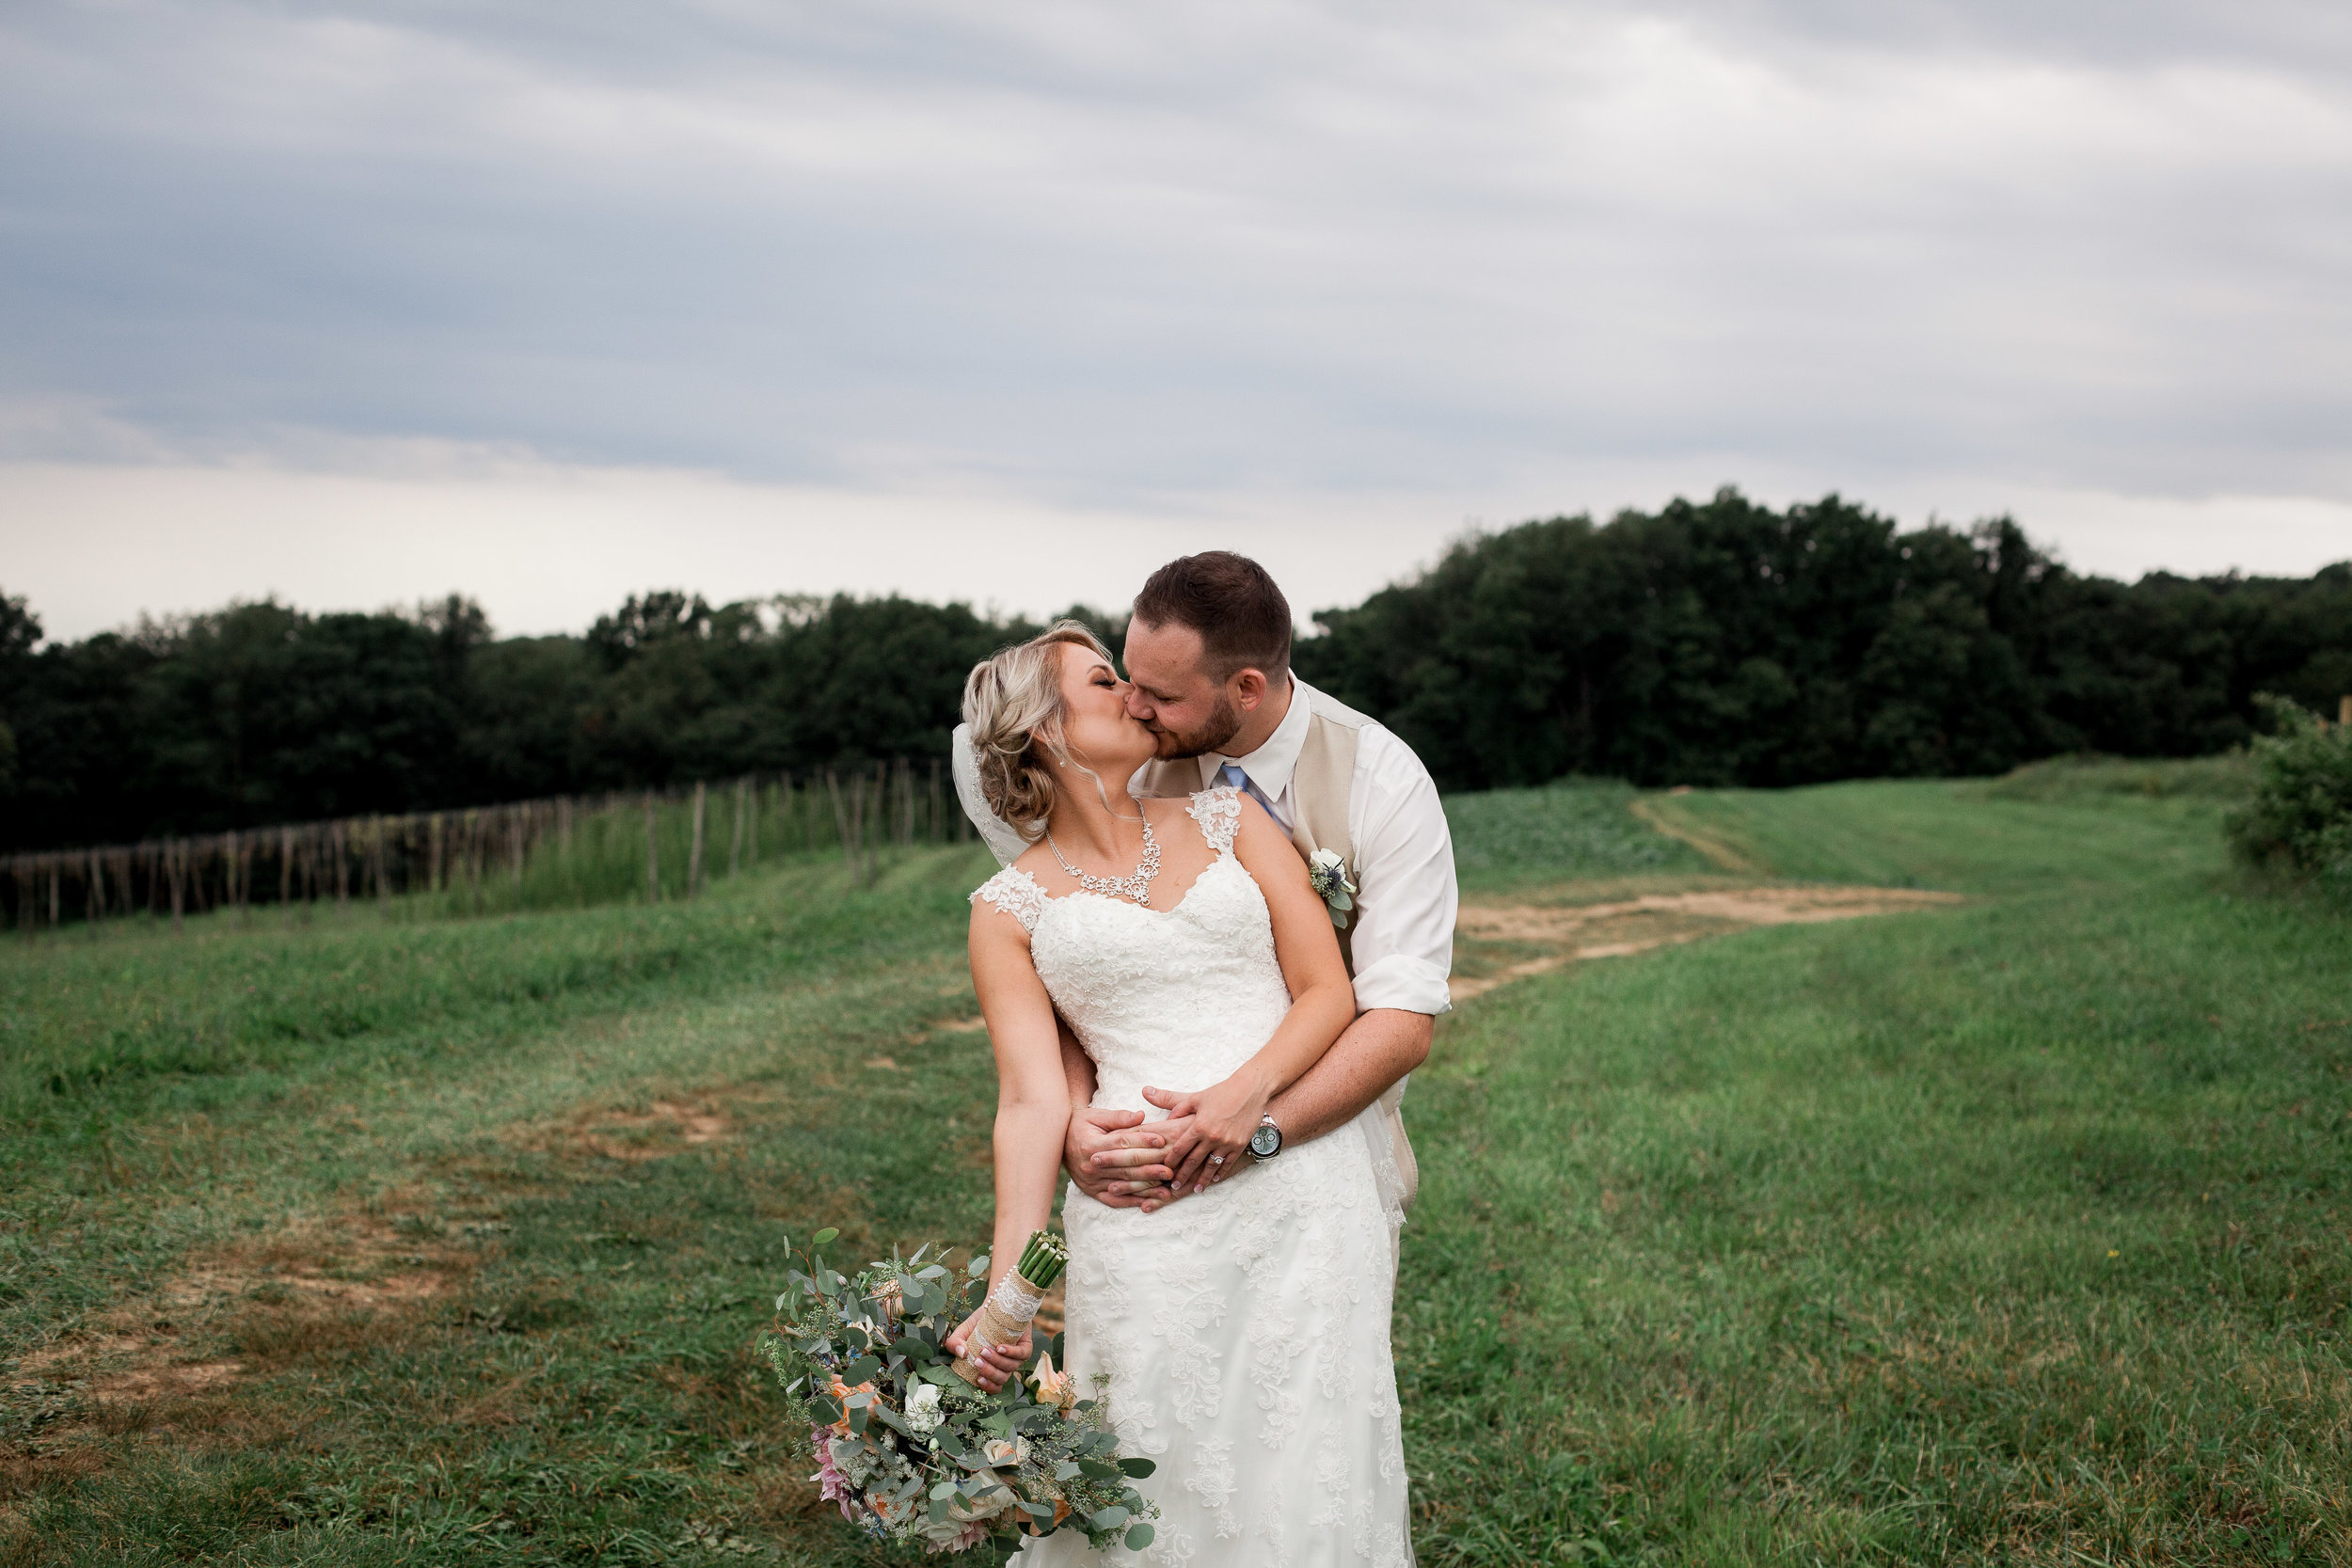 pittsburgh_wedding_photographer_liz_capuano-0961.jpg